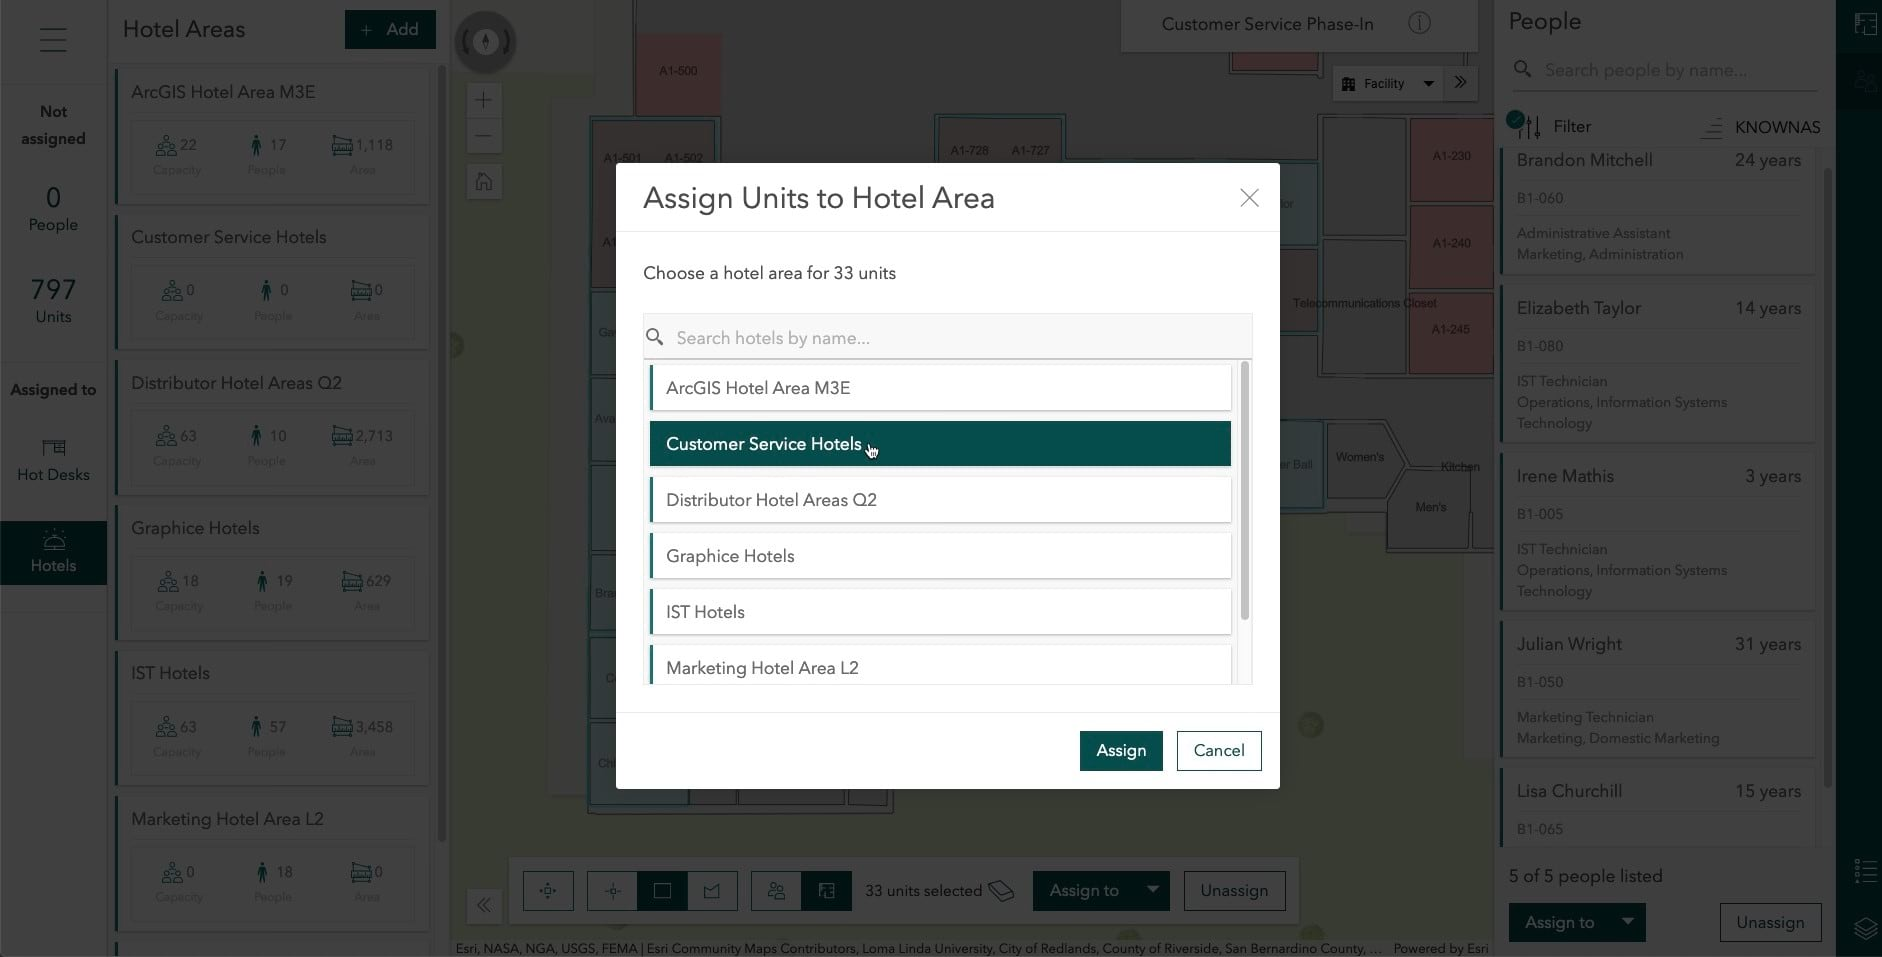 ArcGIS Indoors for ArcGIS Online is out now - assigning a unit to an office hotel